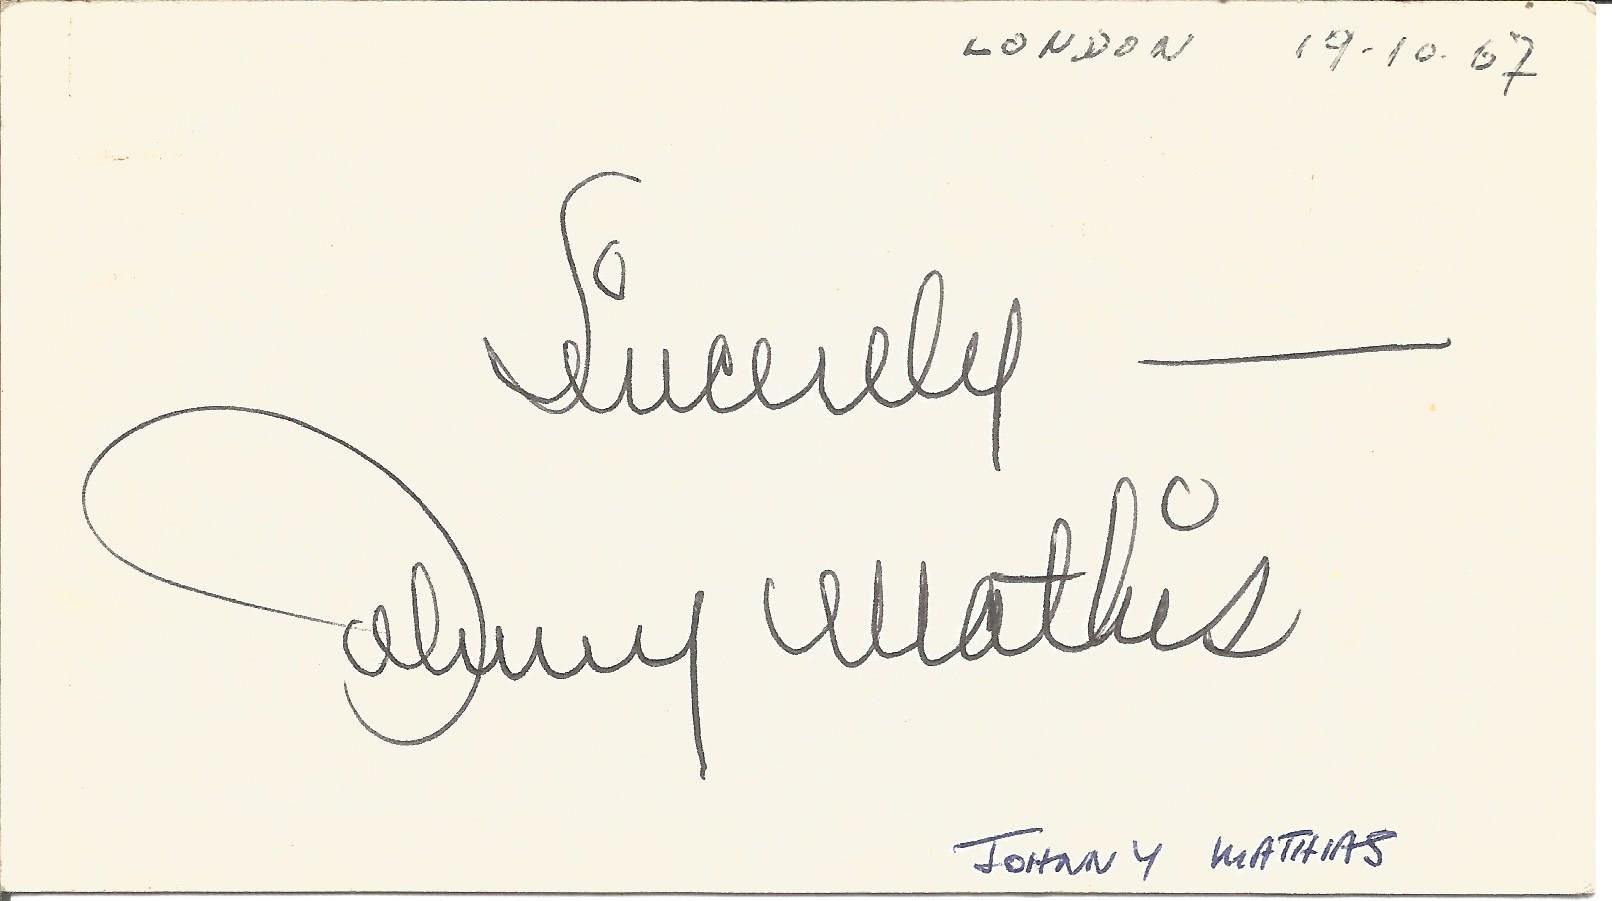 Johnny Mathis signed to clear back of vintage Mario and Francos Terrazza Restaurant 4 x 3 inch